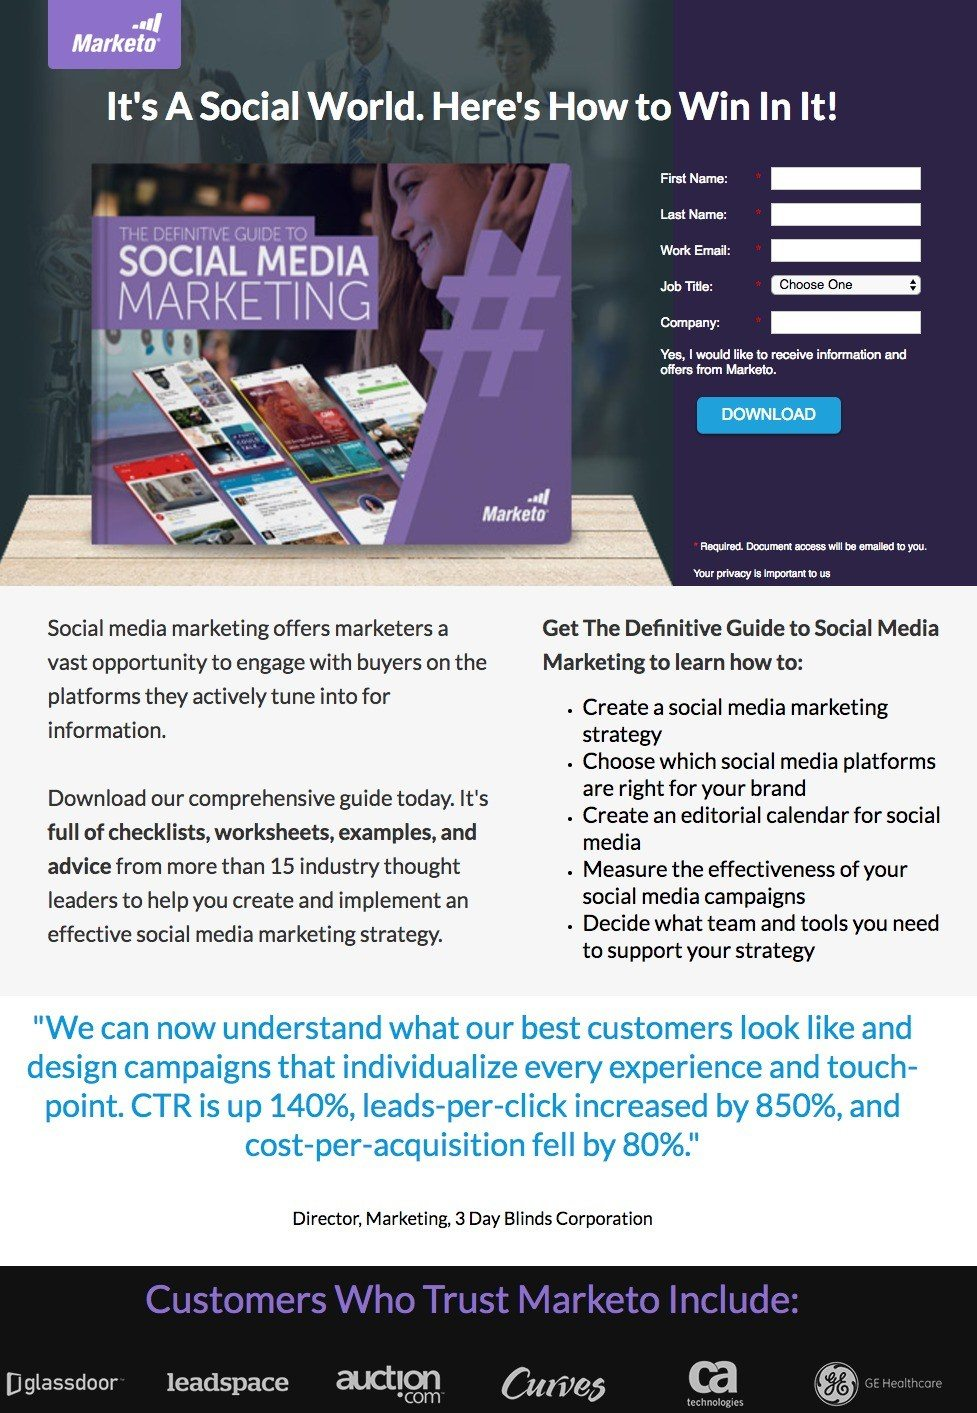 This picture shows how Marketo uses a landing page to generate leads and sales from its social media marketing guide.